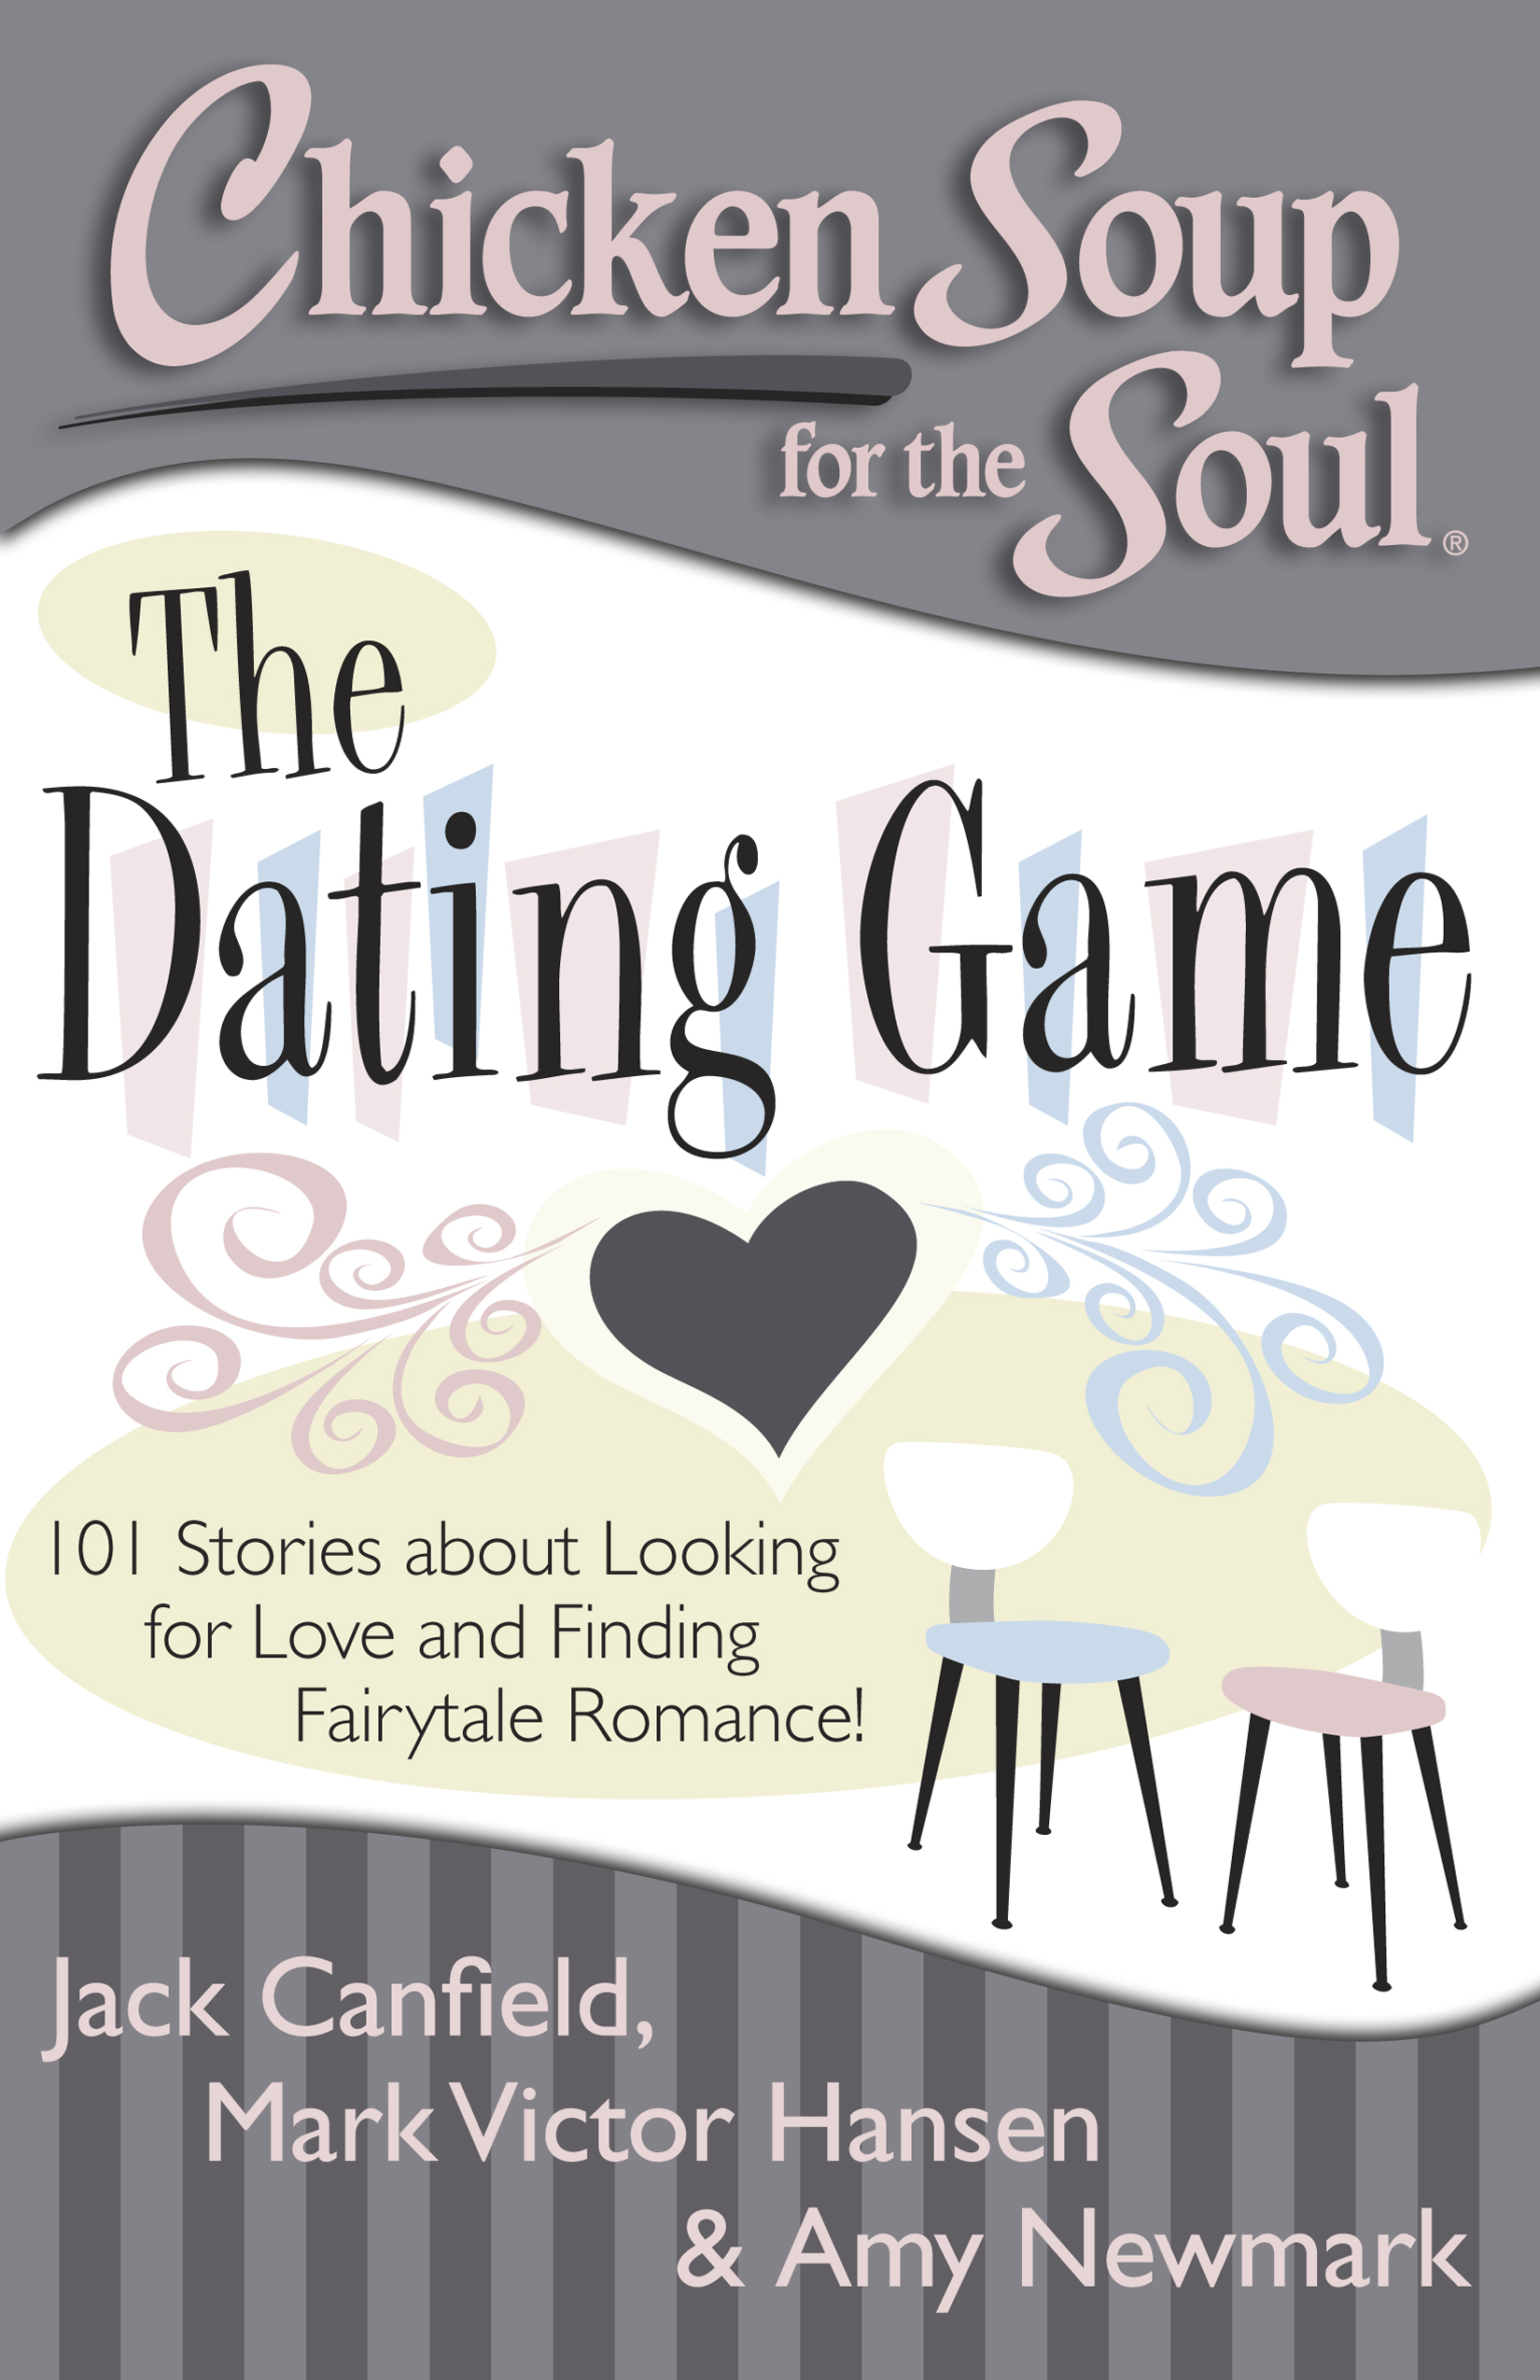 Chicken-soup-for-the-soul-the-dating-game-9781611599299_hr